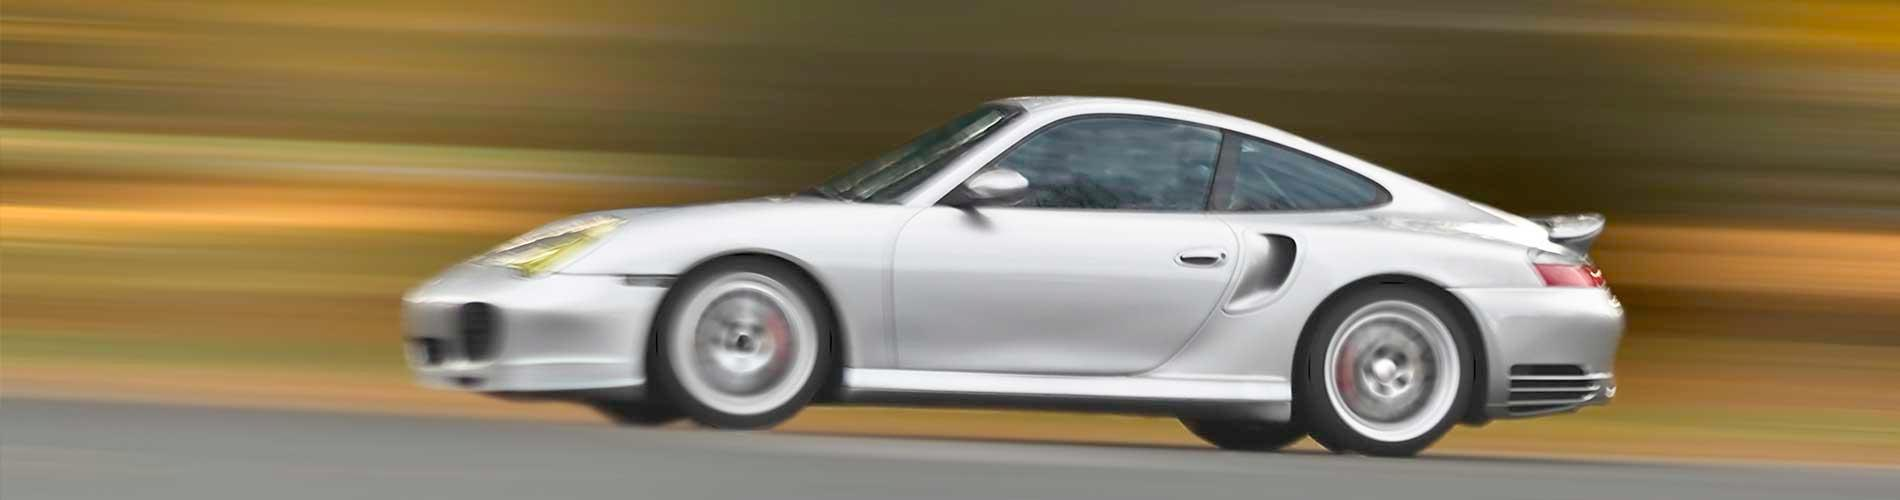 BMW / Mercedes / Porsche / Audi Repair Services in Tacoma